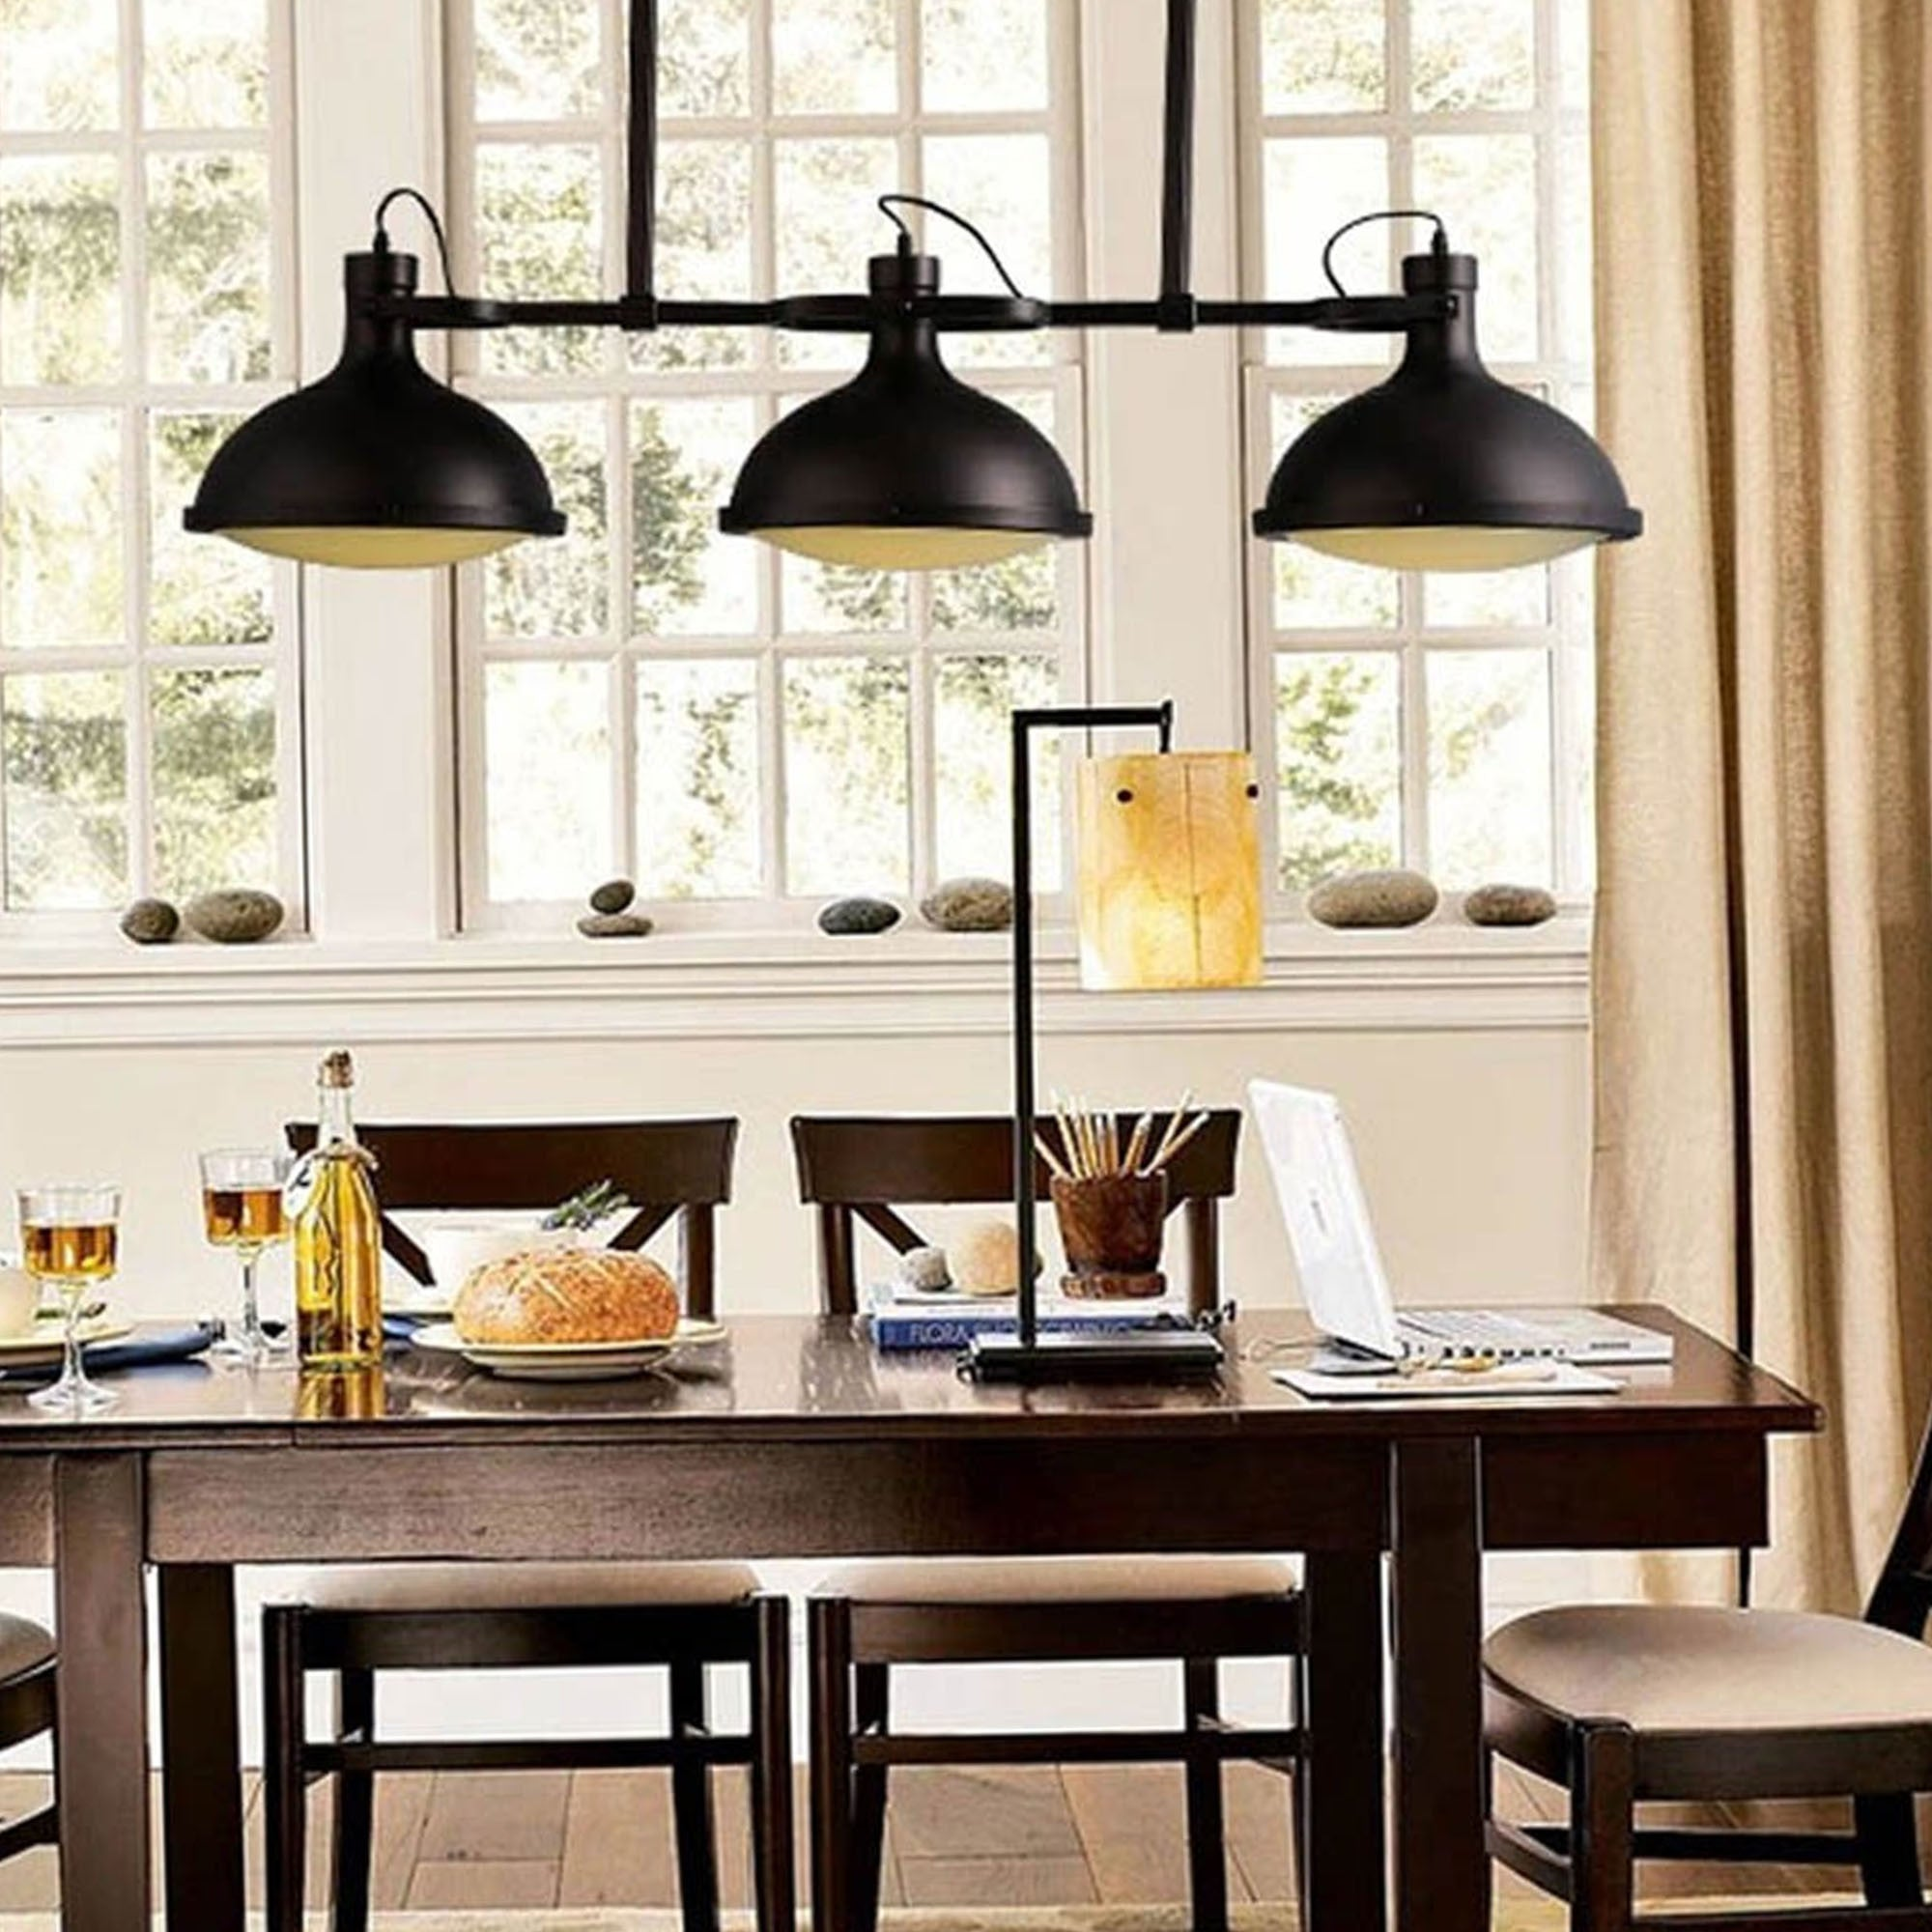 3 Heads Pendant Light Nordic Black CY-DD-118 -  3 رؤوس اناره معلقه - Shop Online Furniture and Home Decor Store in Dubai, UAE at ebarza